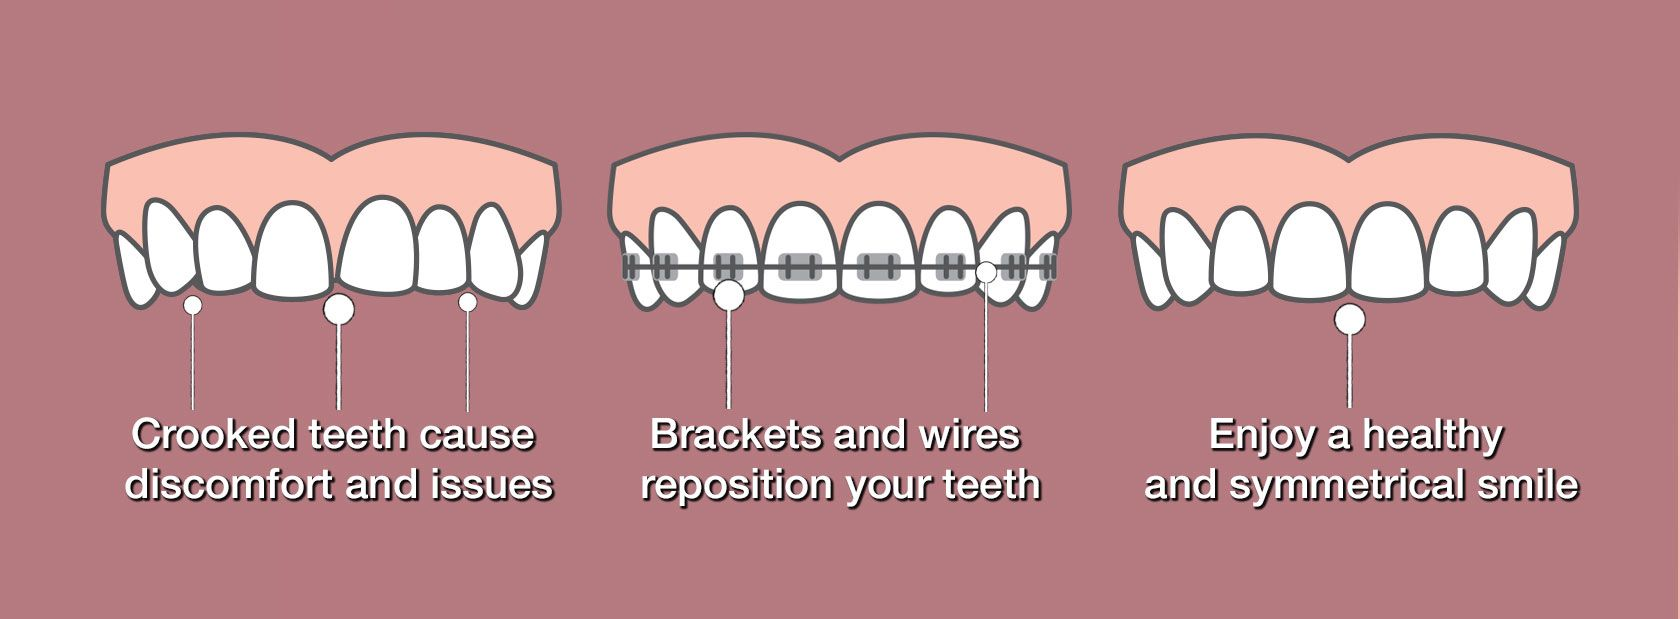 Illustrations of teeth in different stages of orthodontic treatment